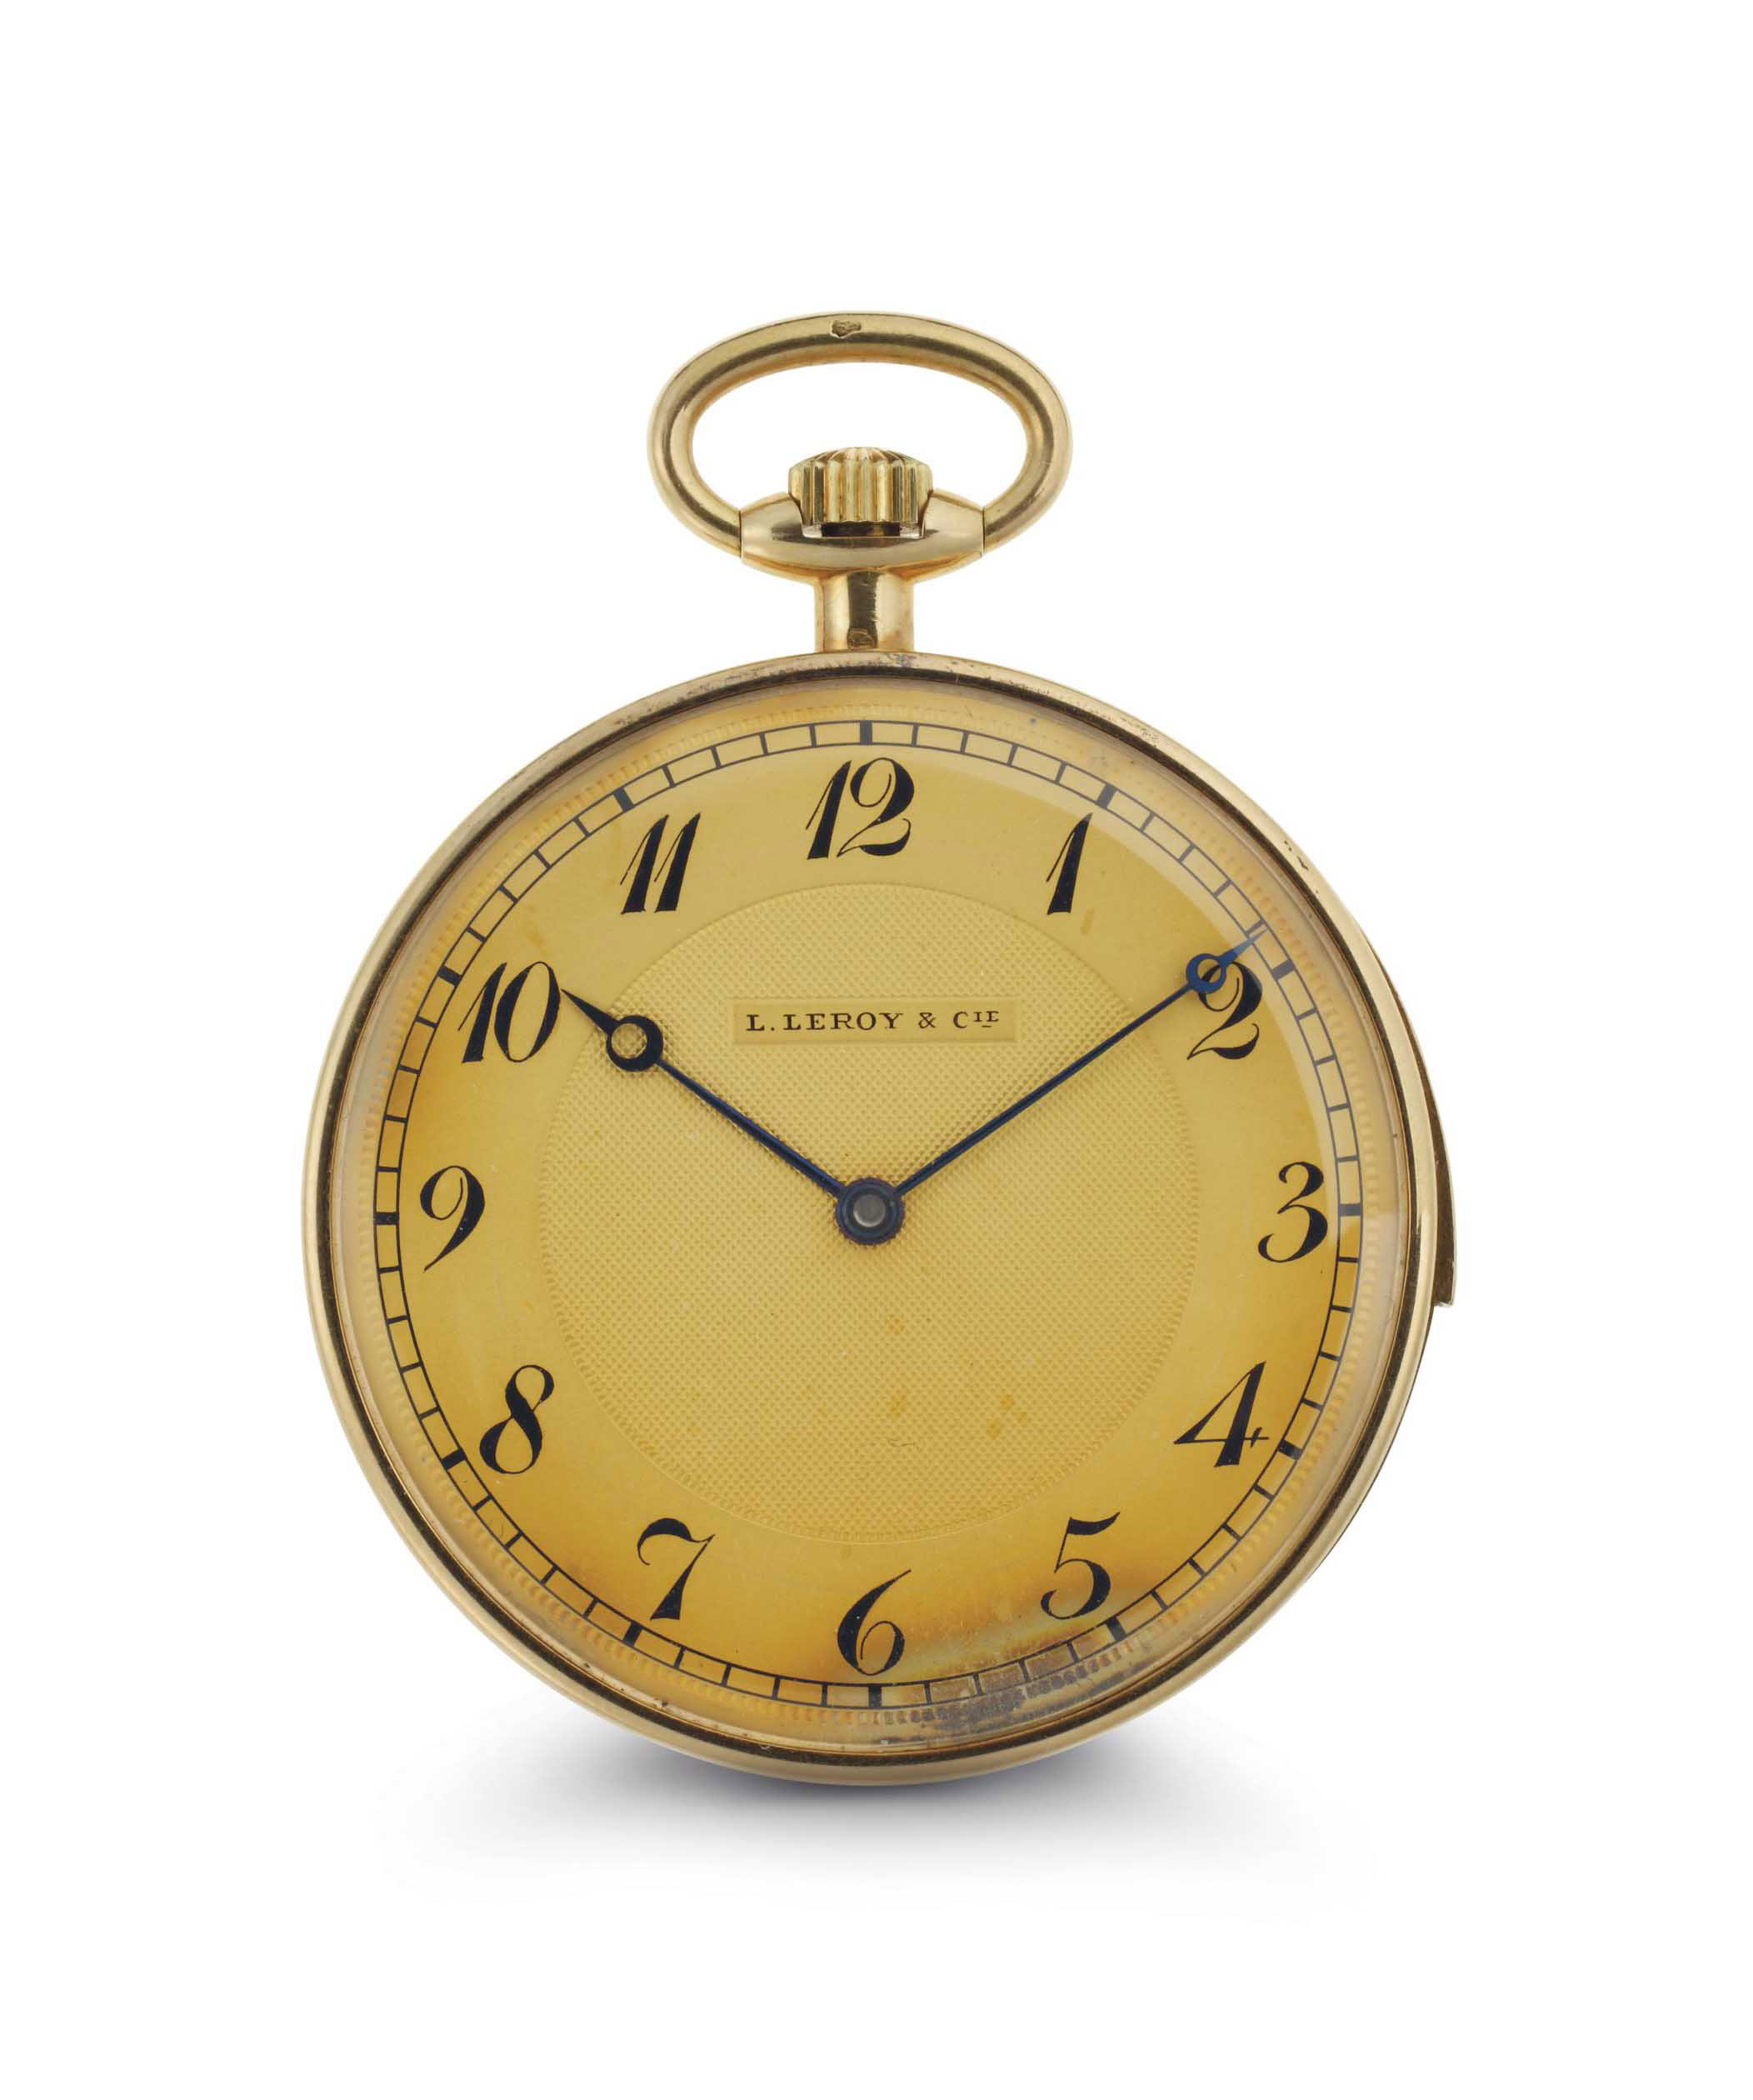 L. LeRoy & Cie. A Fine 18k Gold Openface Minute Repeating Keyless Lever Dress Watch With Chain And Presentation Box